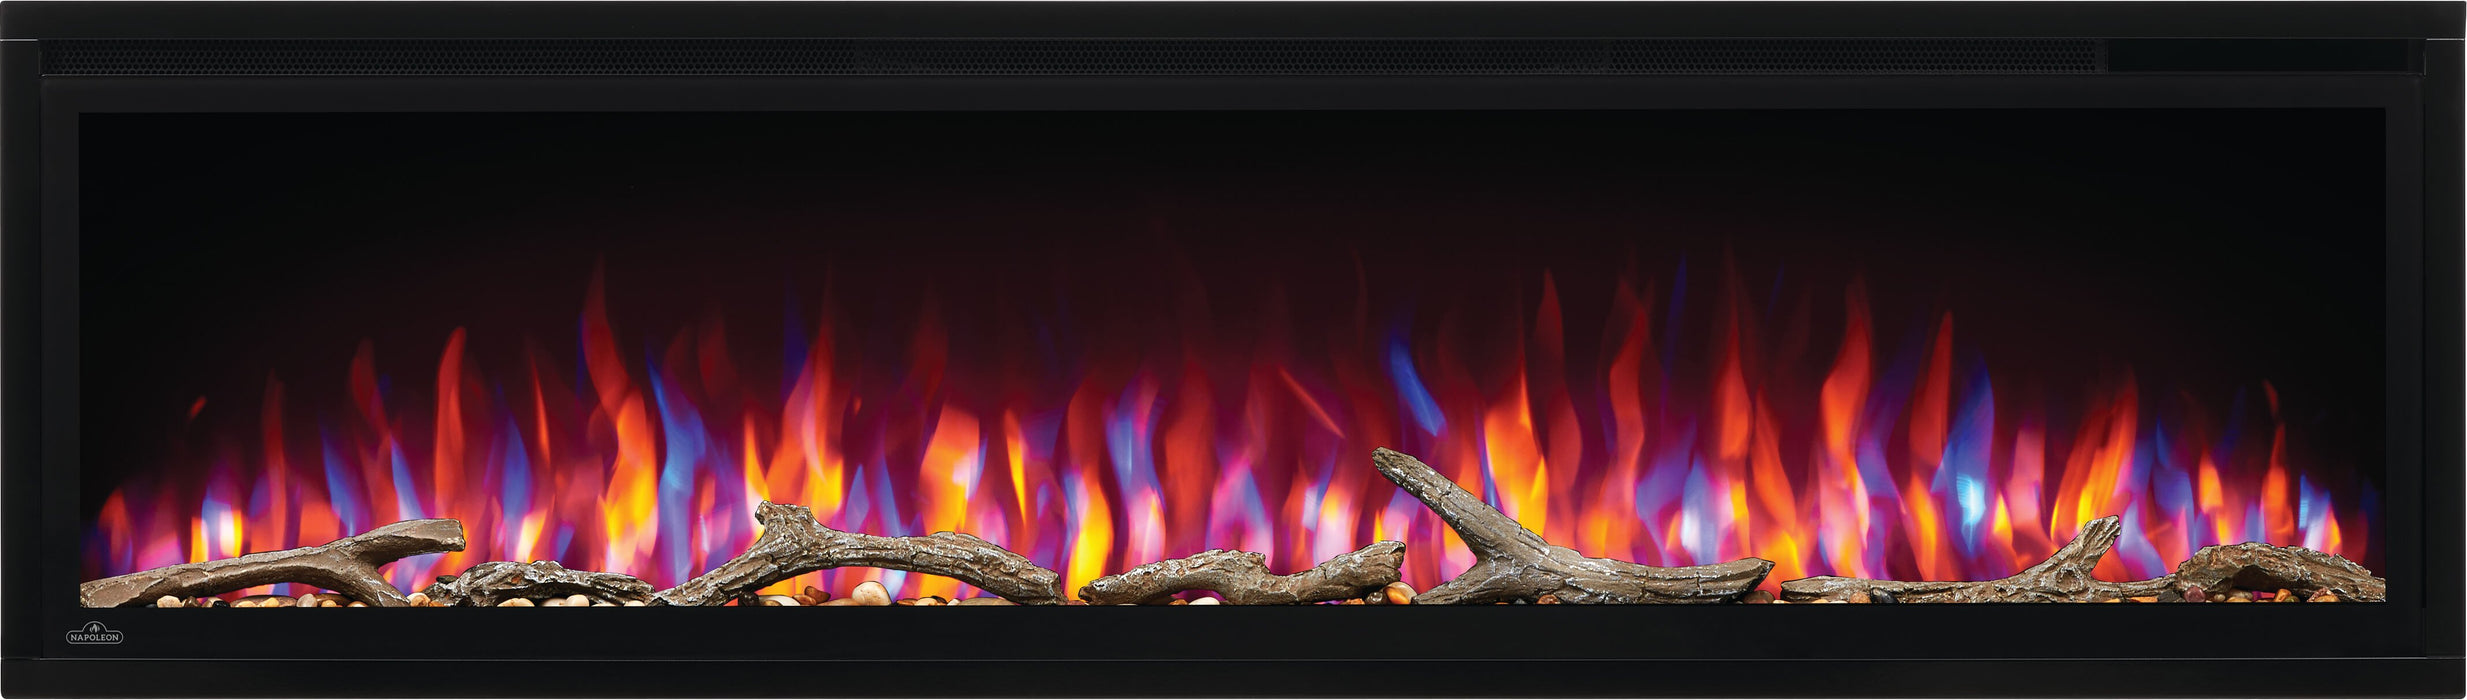 Napoleon Entice 60-In Wall Mount Electric Fireplace NEFL60CFH